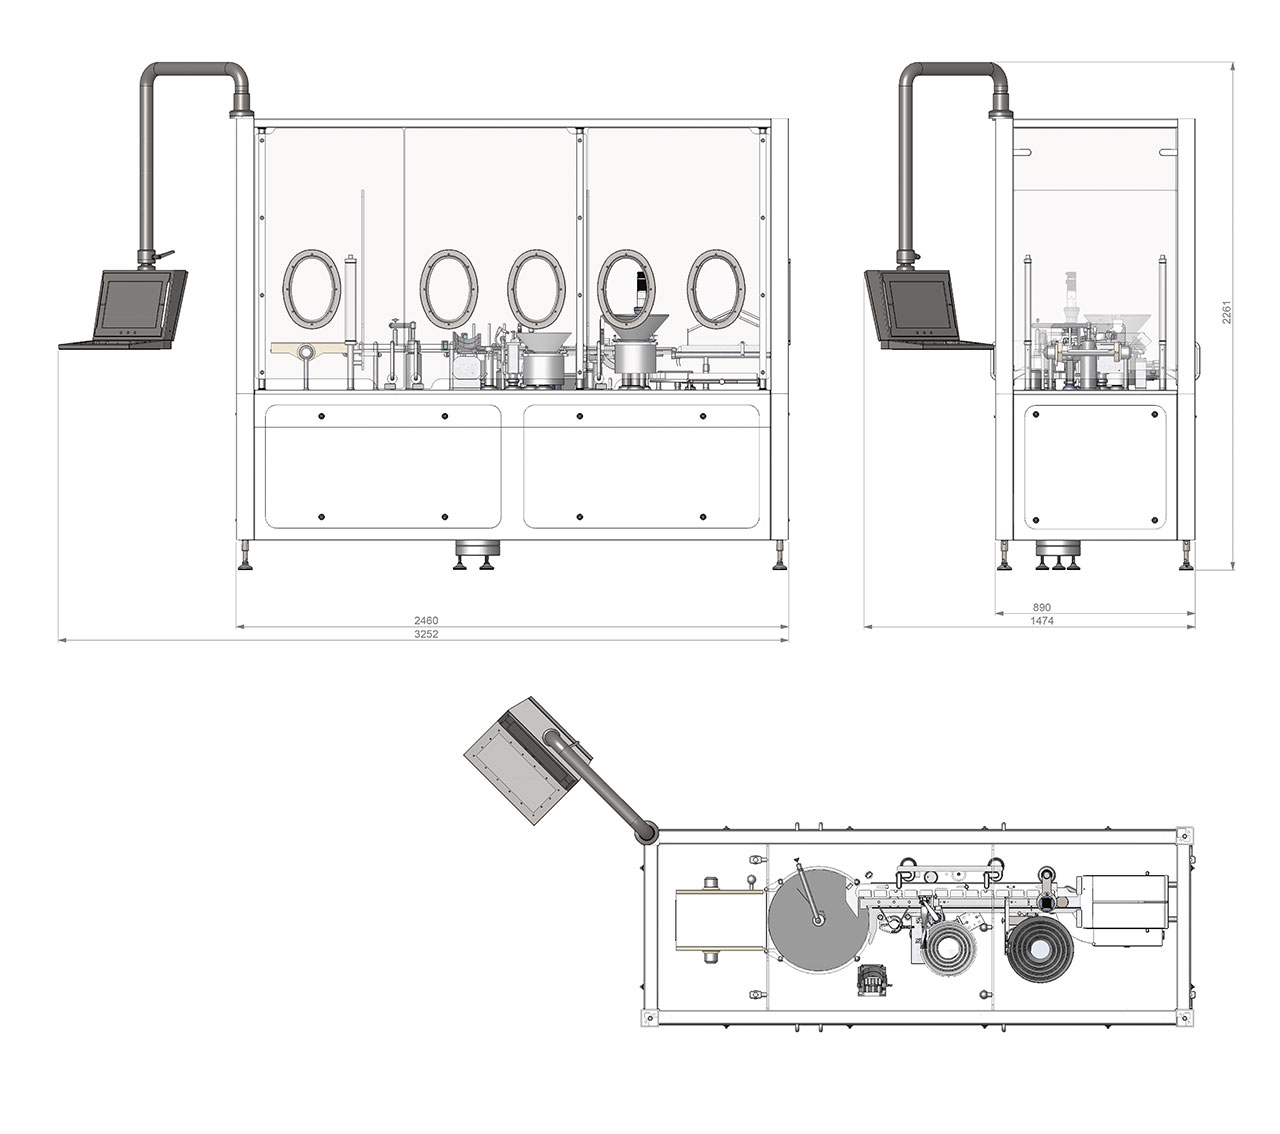 FPC60 Technical drawing